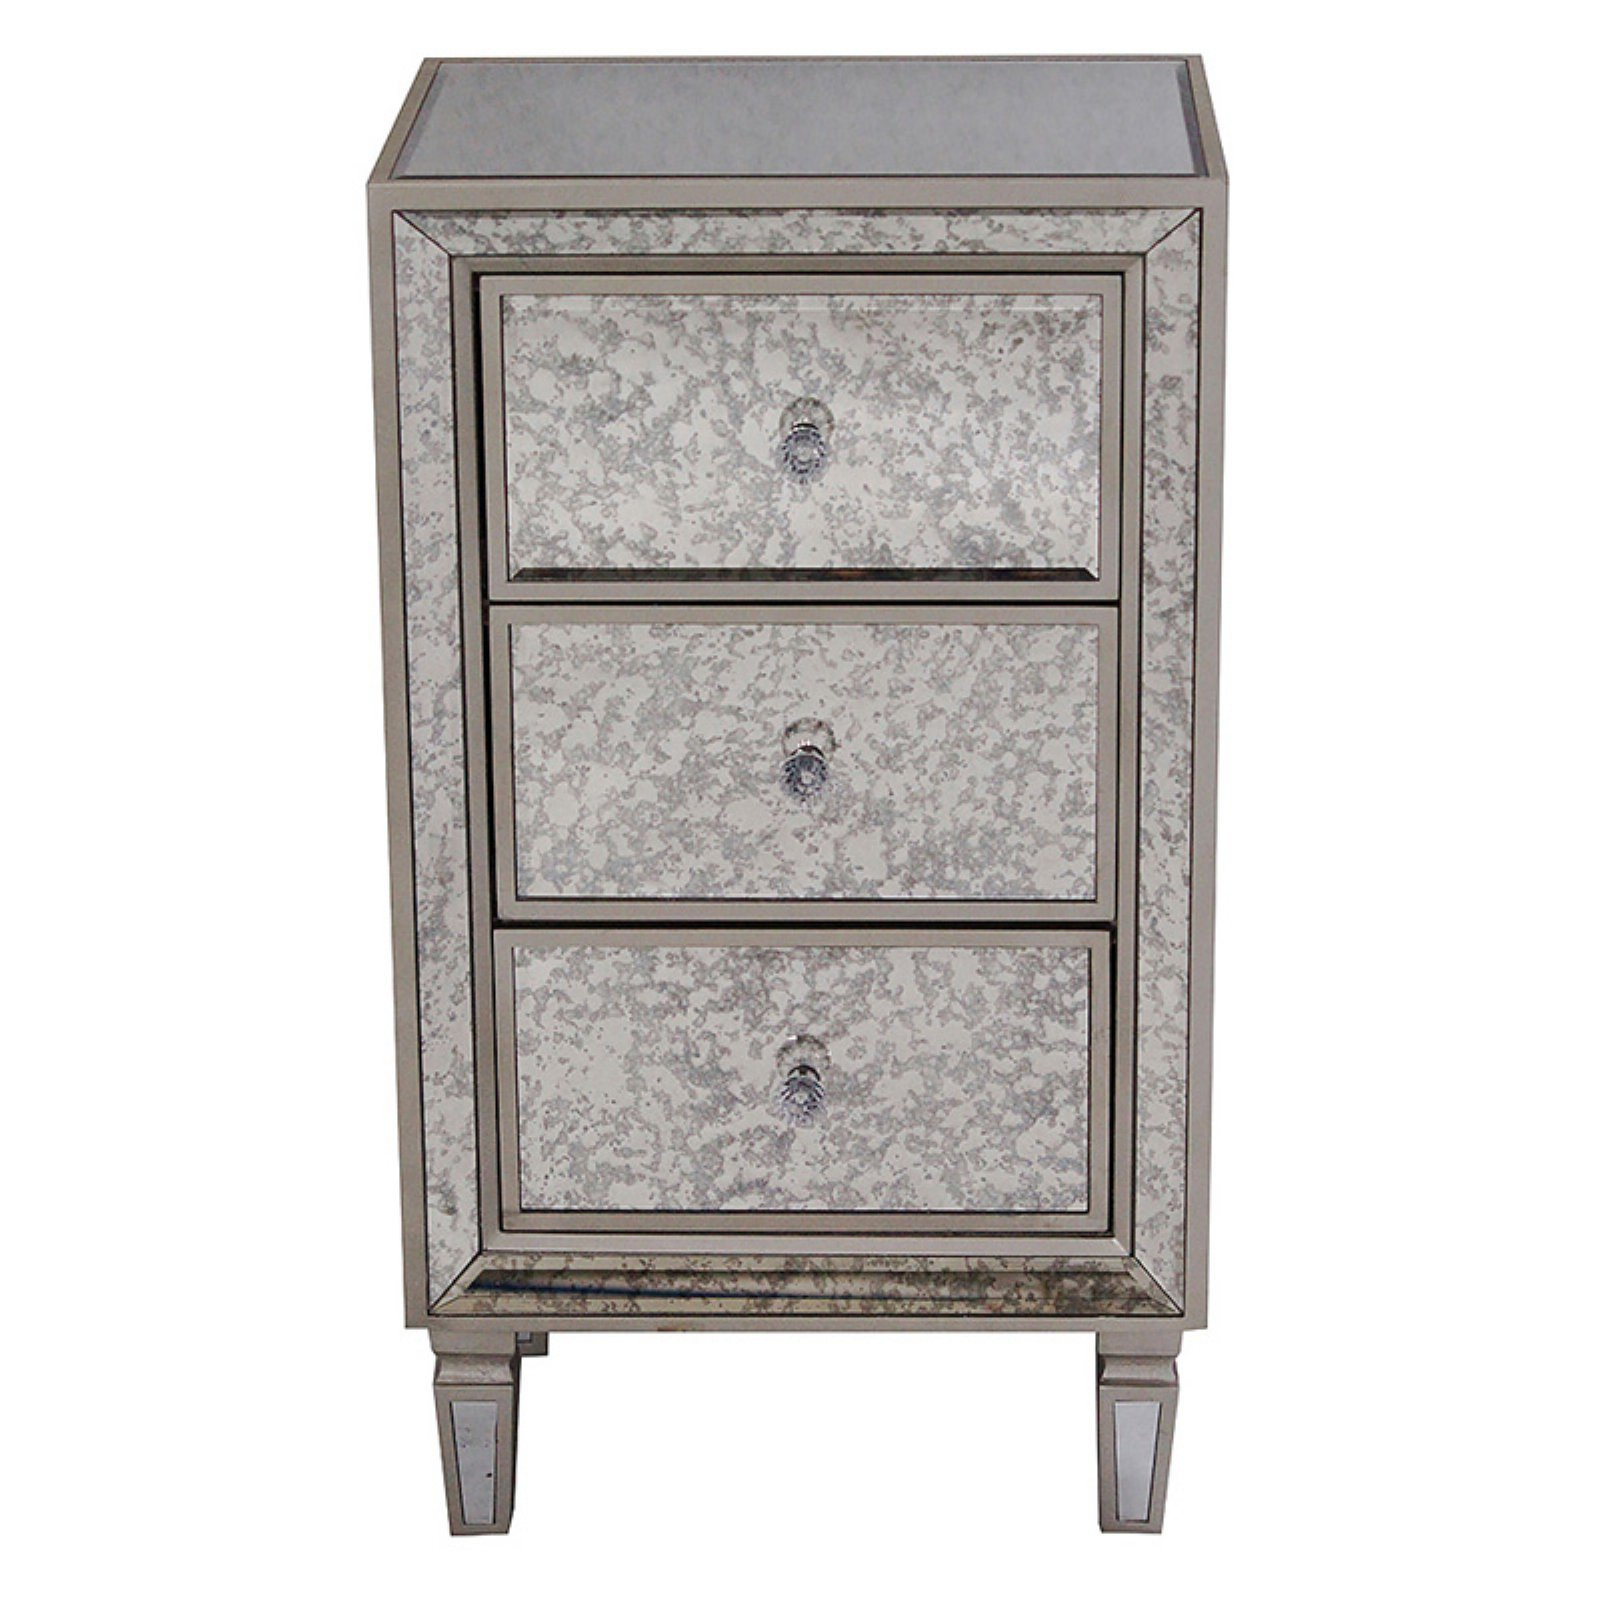 Heather Ann Creations Eleganza 3 Drawer Tall Antiqued Mirror Accent Cabinet